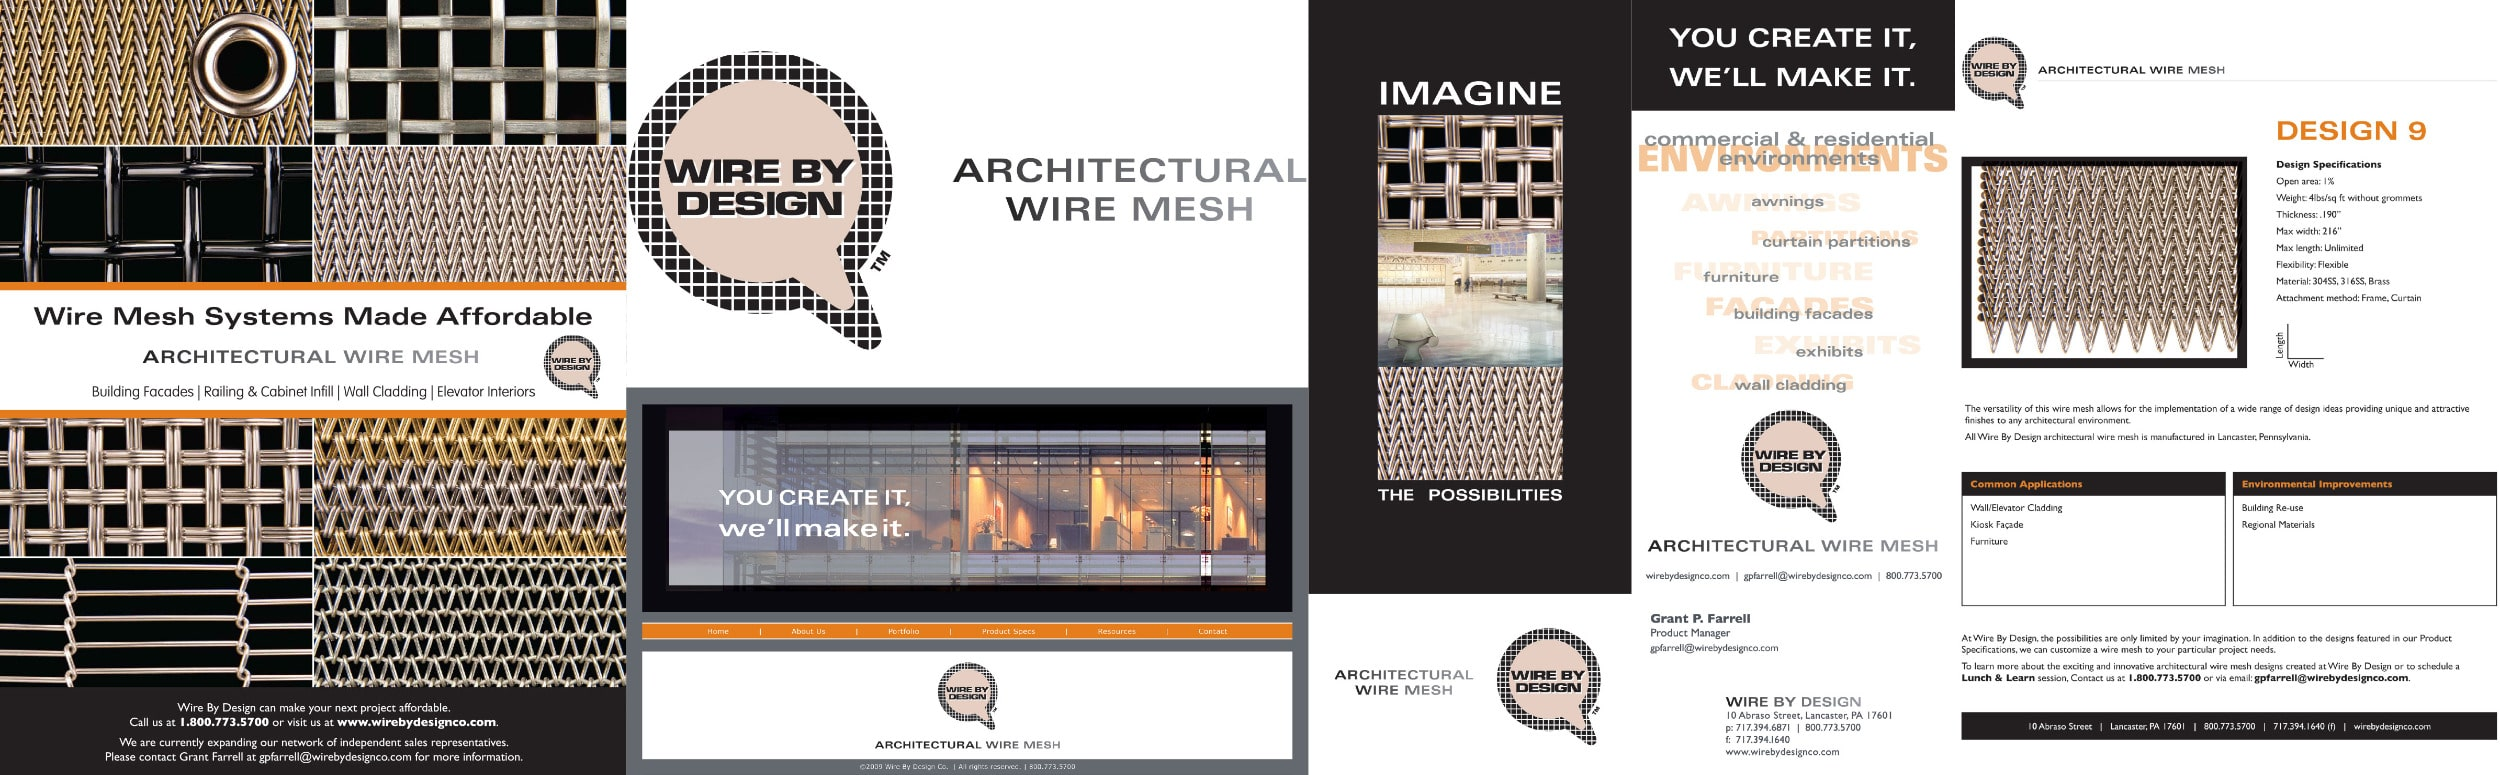 Orbit Creative Wire By Design New Product Case Study